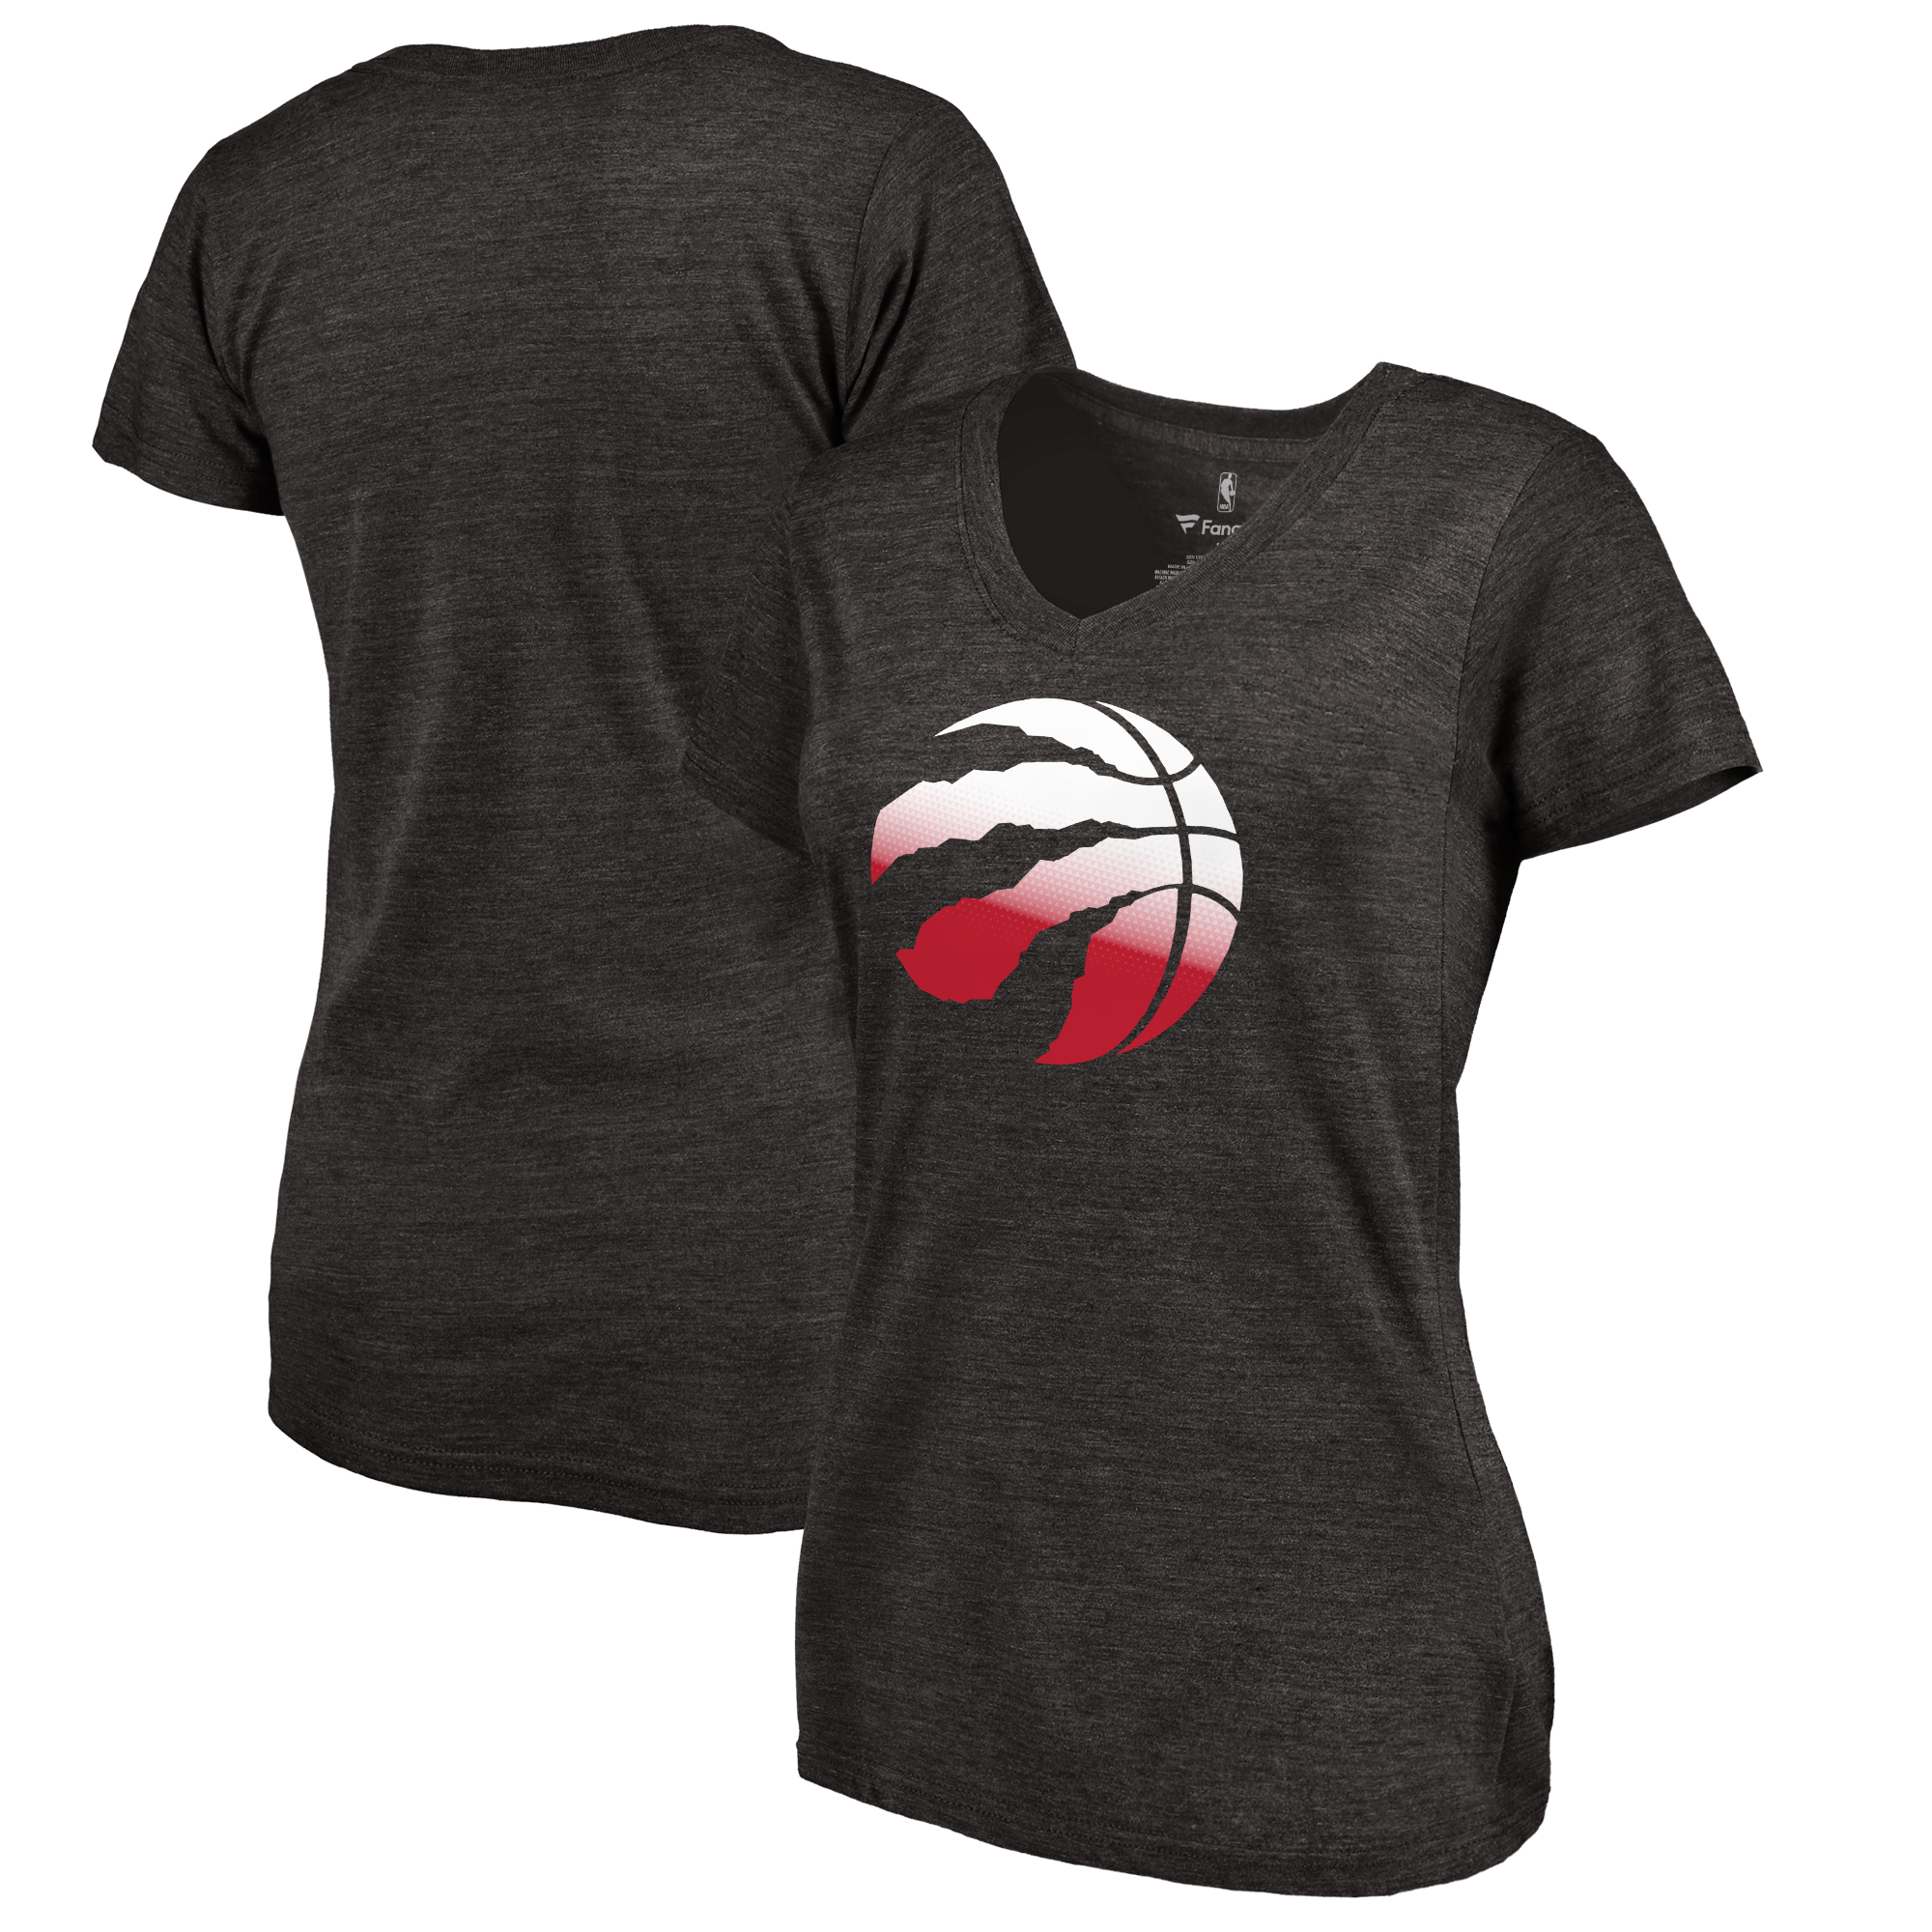 Toronto Raptors Fanatics Branded Women's Gradient Logo Tri-Blend T-Shirt - Black